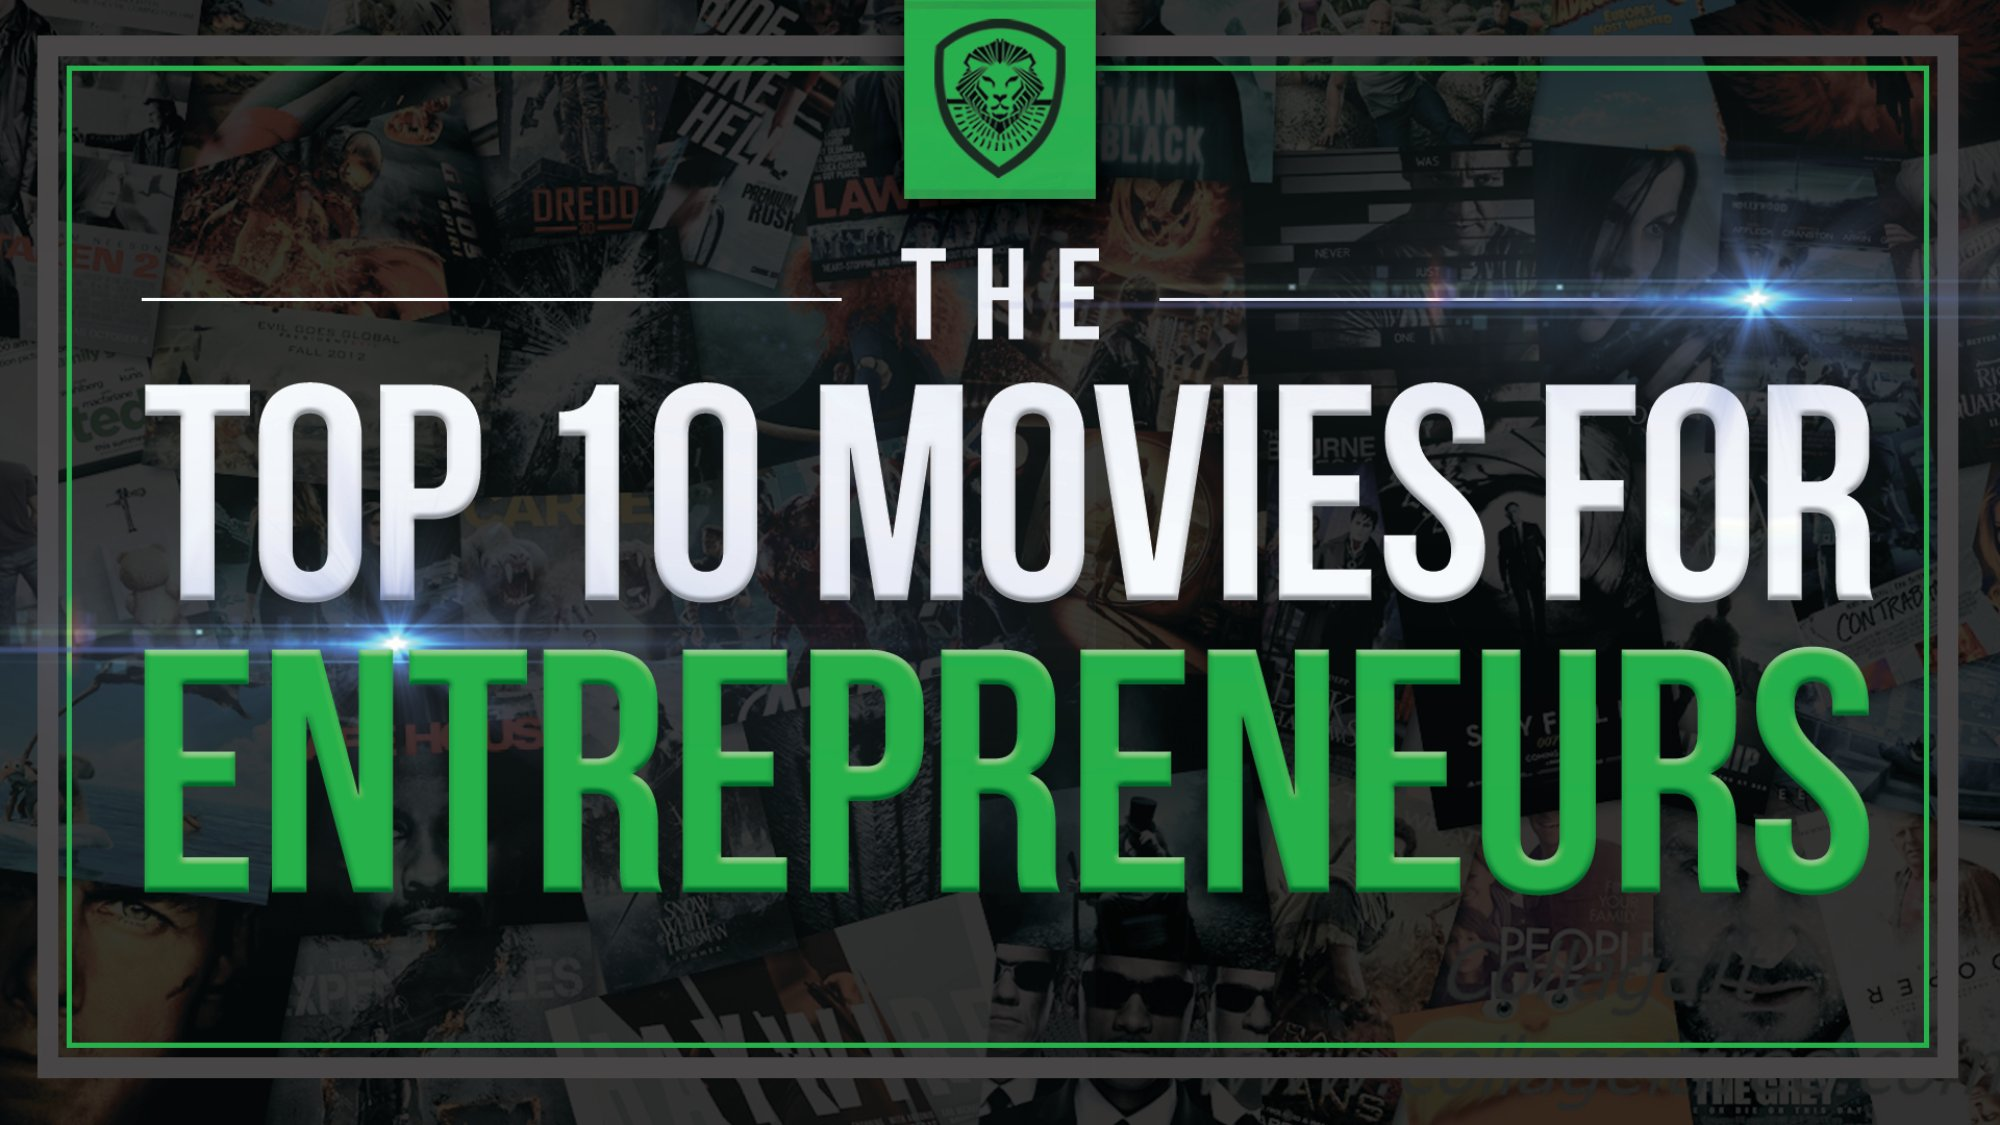 10 Inspirational Hollywood Movies For Entrepreneurs